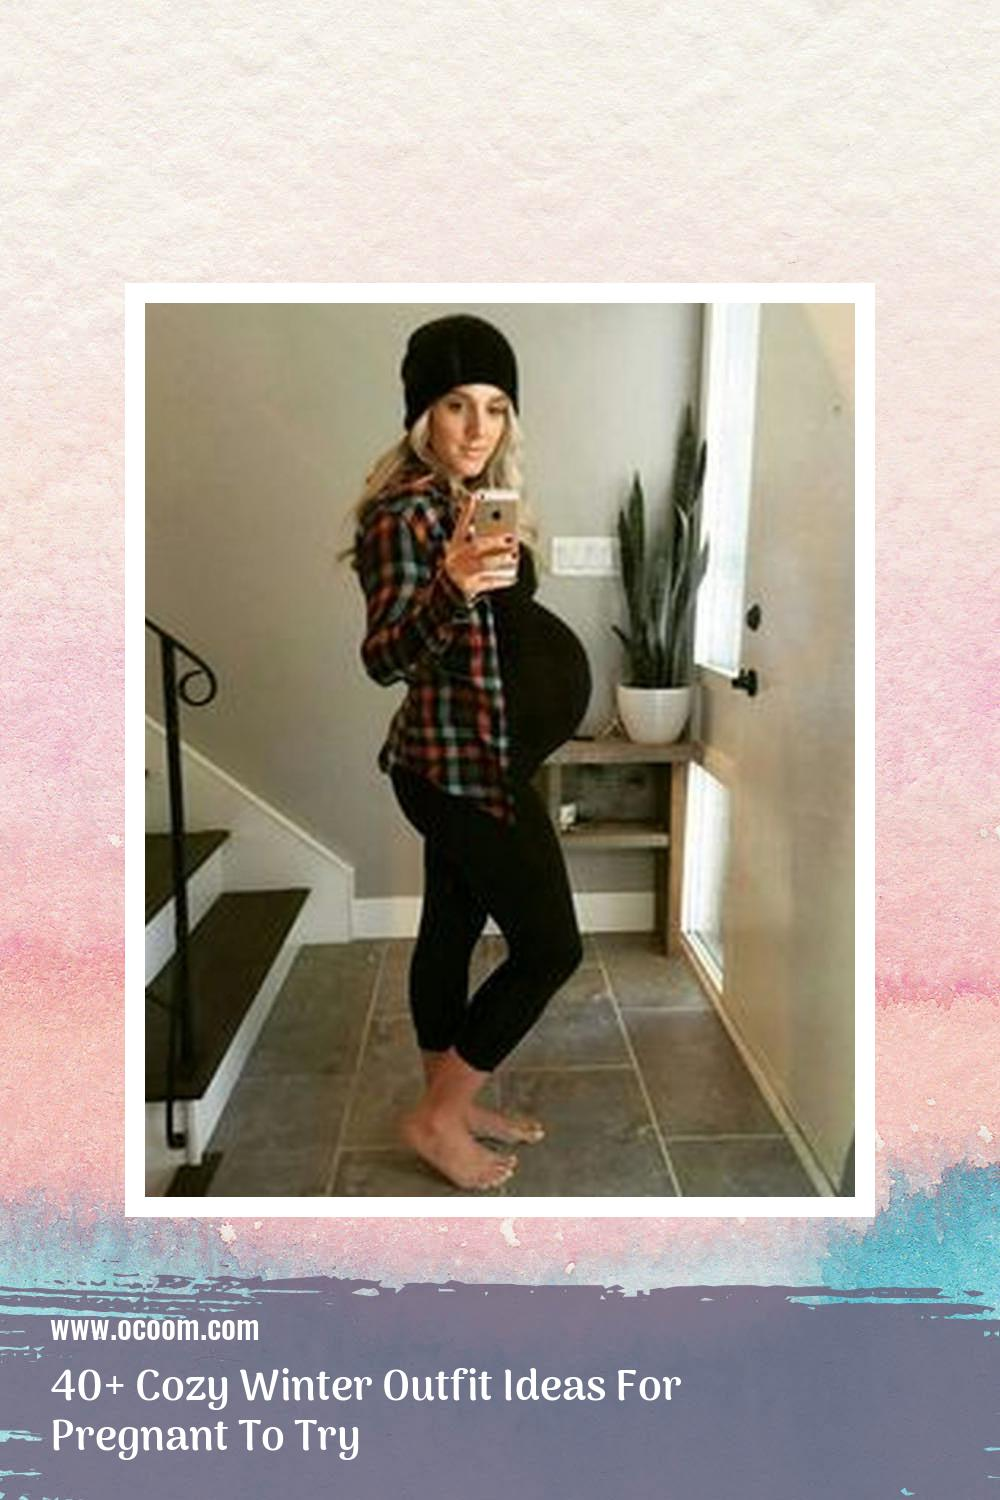 40+ Cozy Winter Outfit Ideas For Pregnant To Try 41